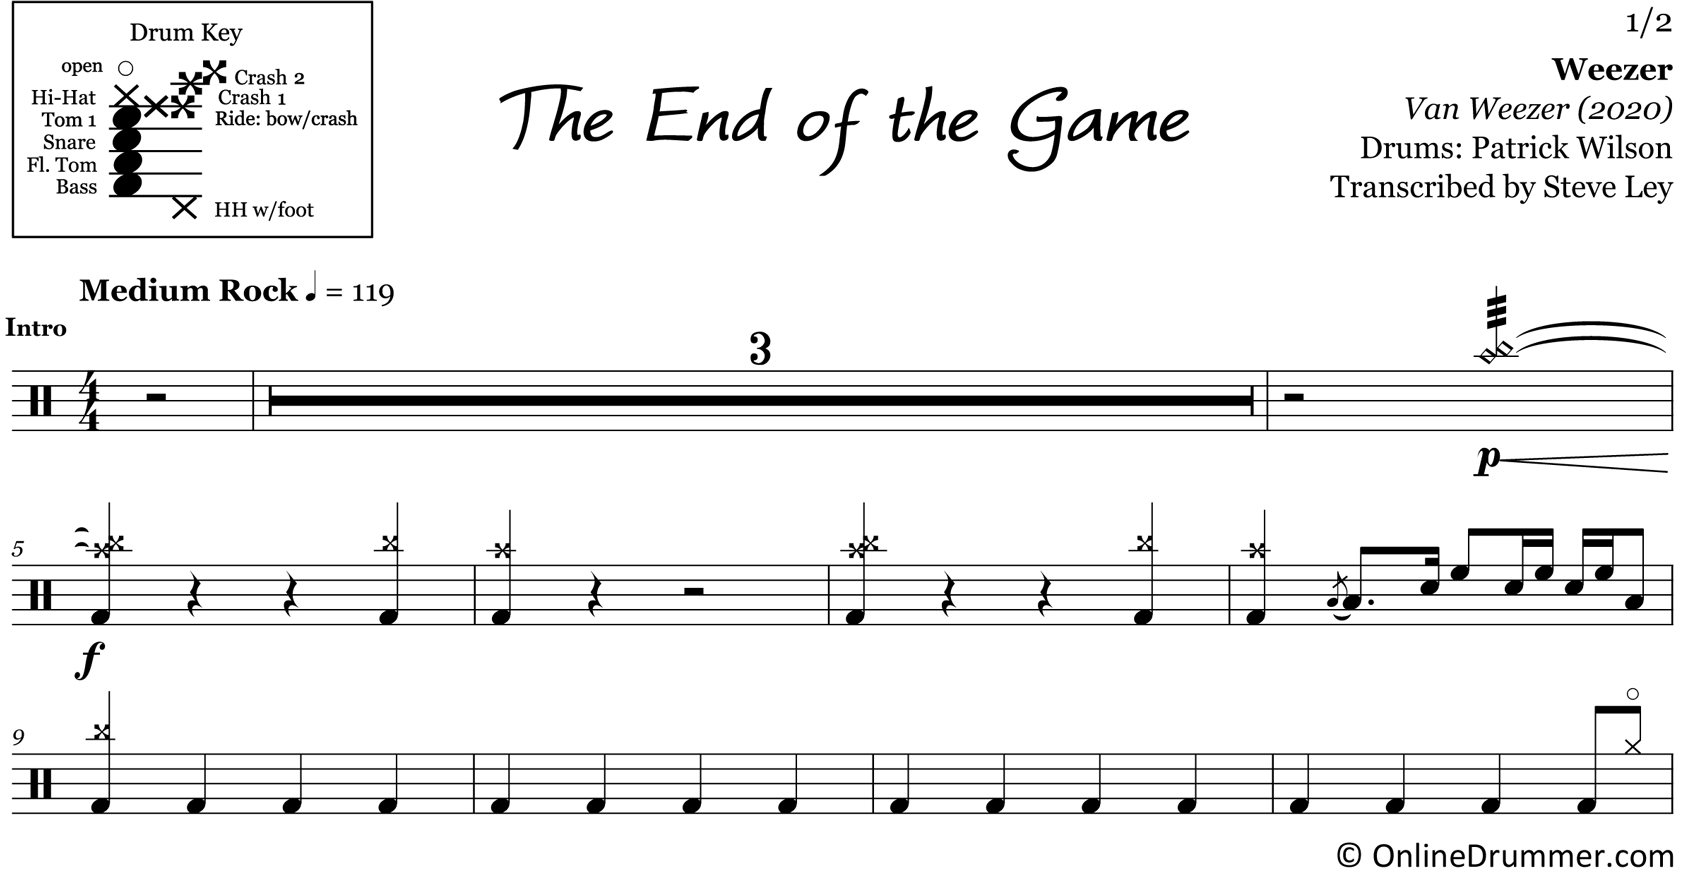 The End of the Game - Weezer - Drum Sheet Music